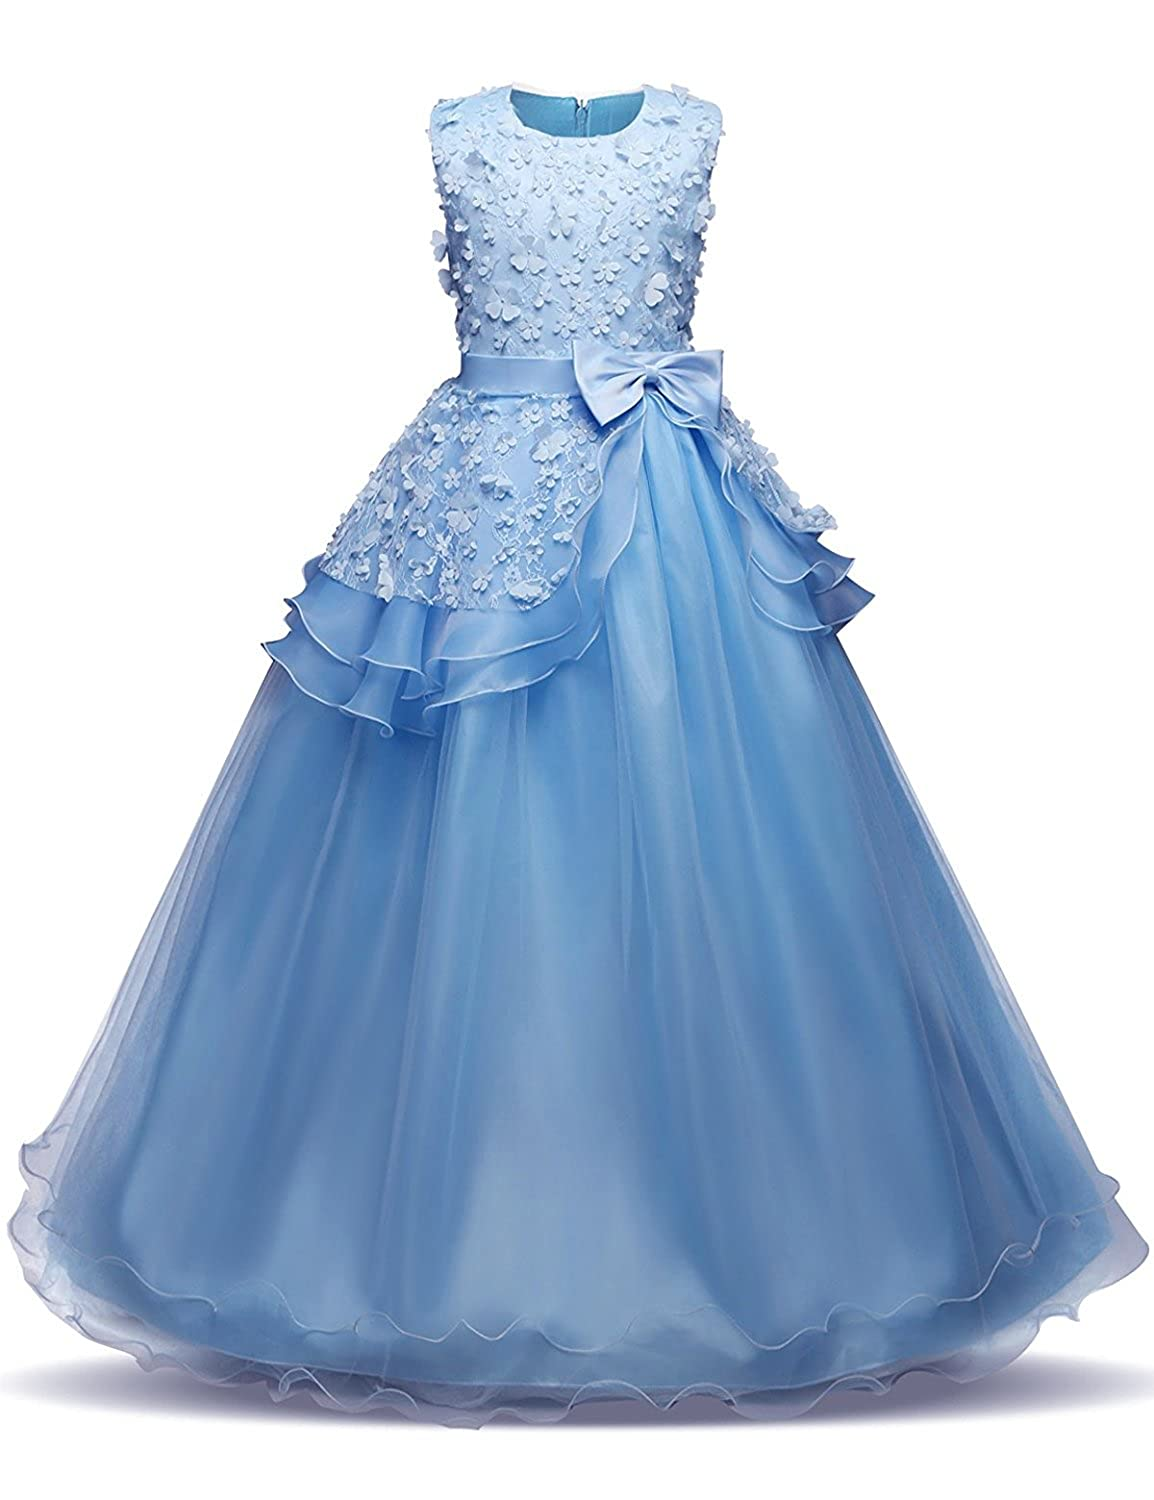 Amazon.com: IBTOM CASTLE Kids Girl Tulle Embroidery Princess Lace ...